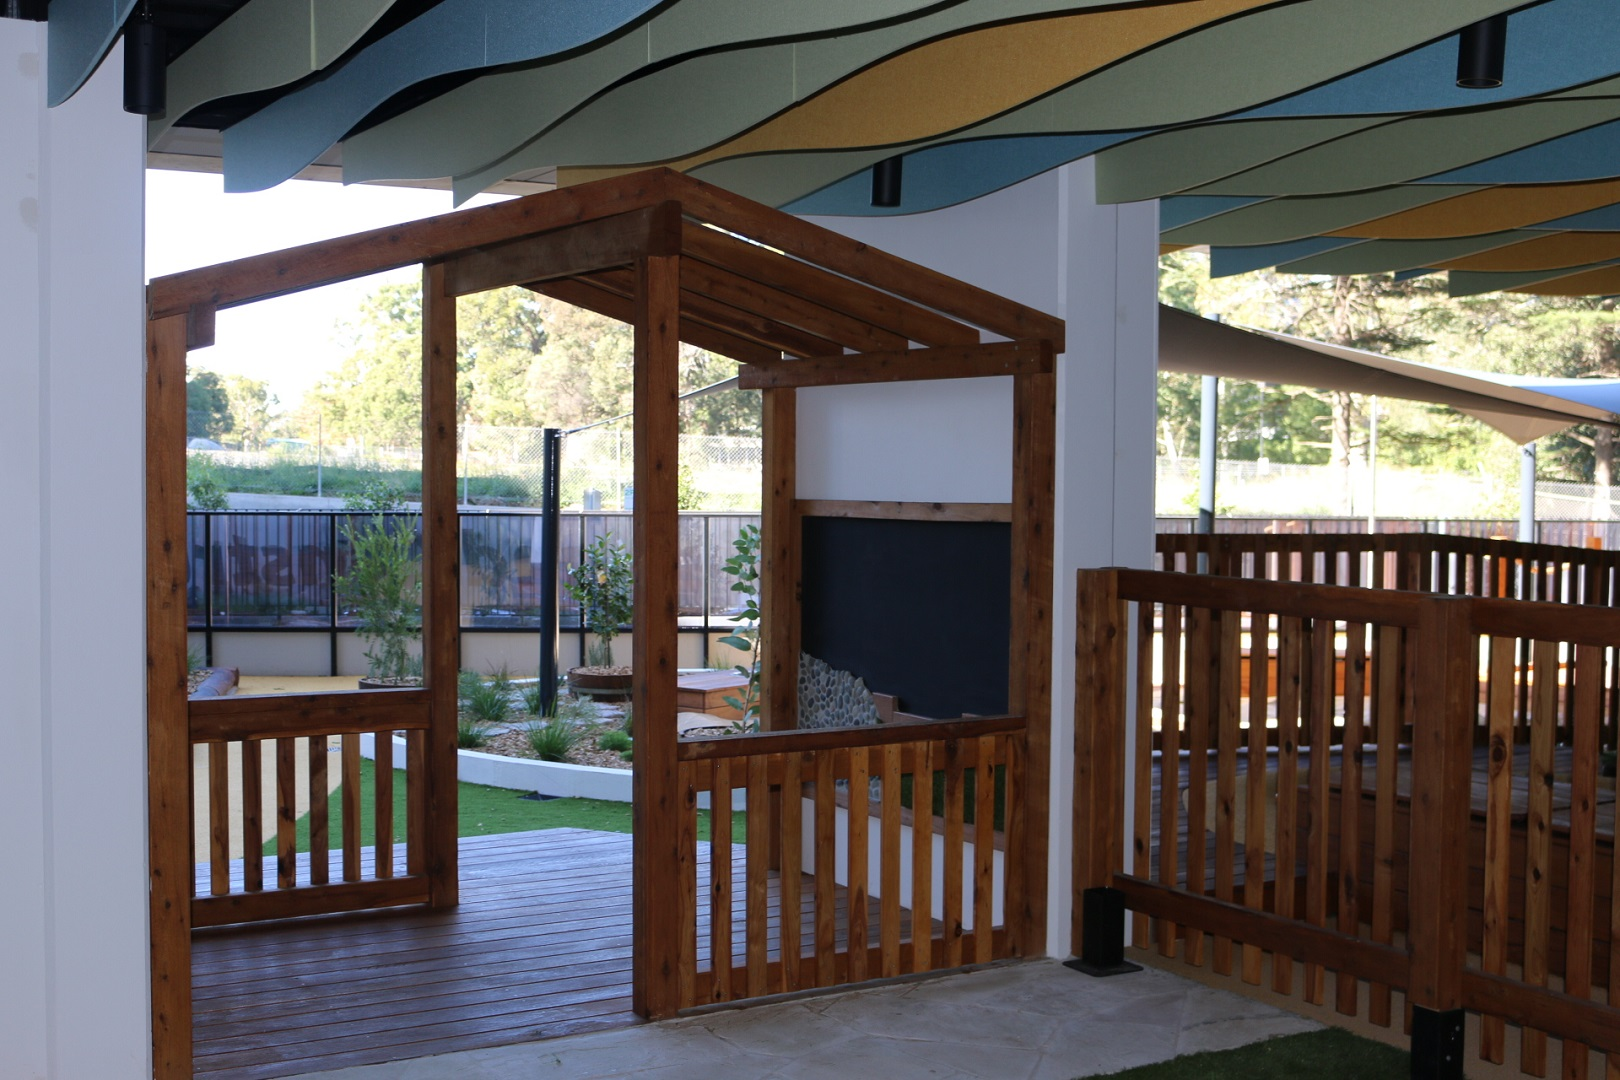 Indoor - outdoor cubby - northryde